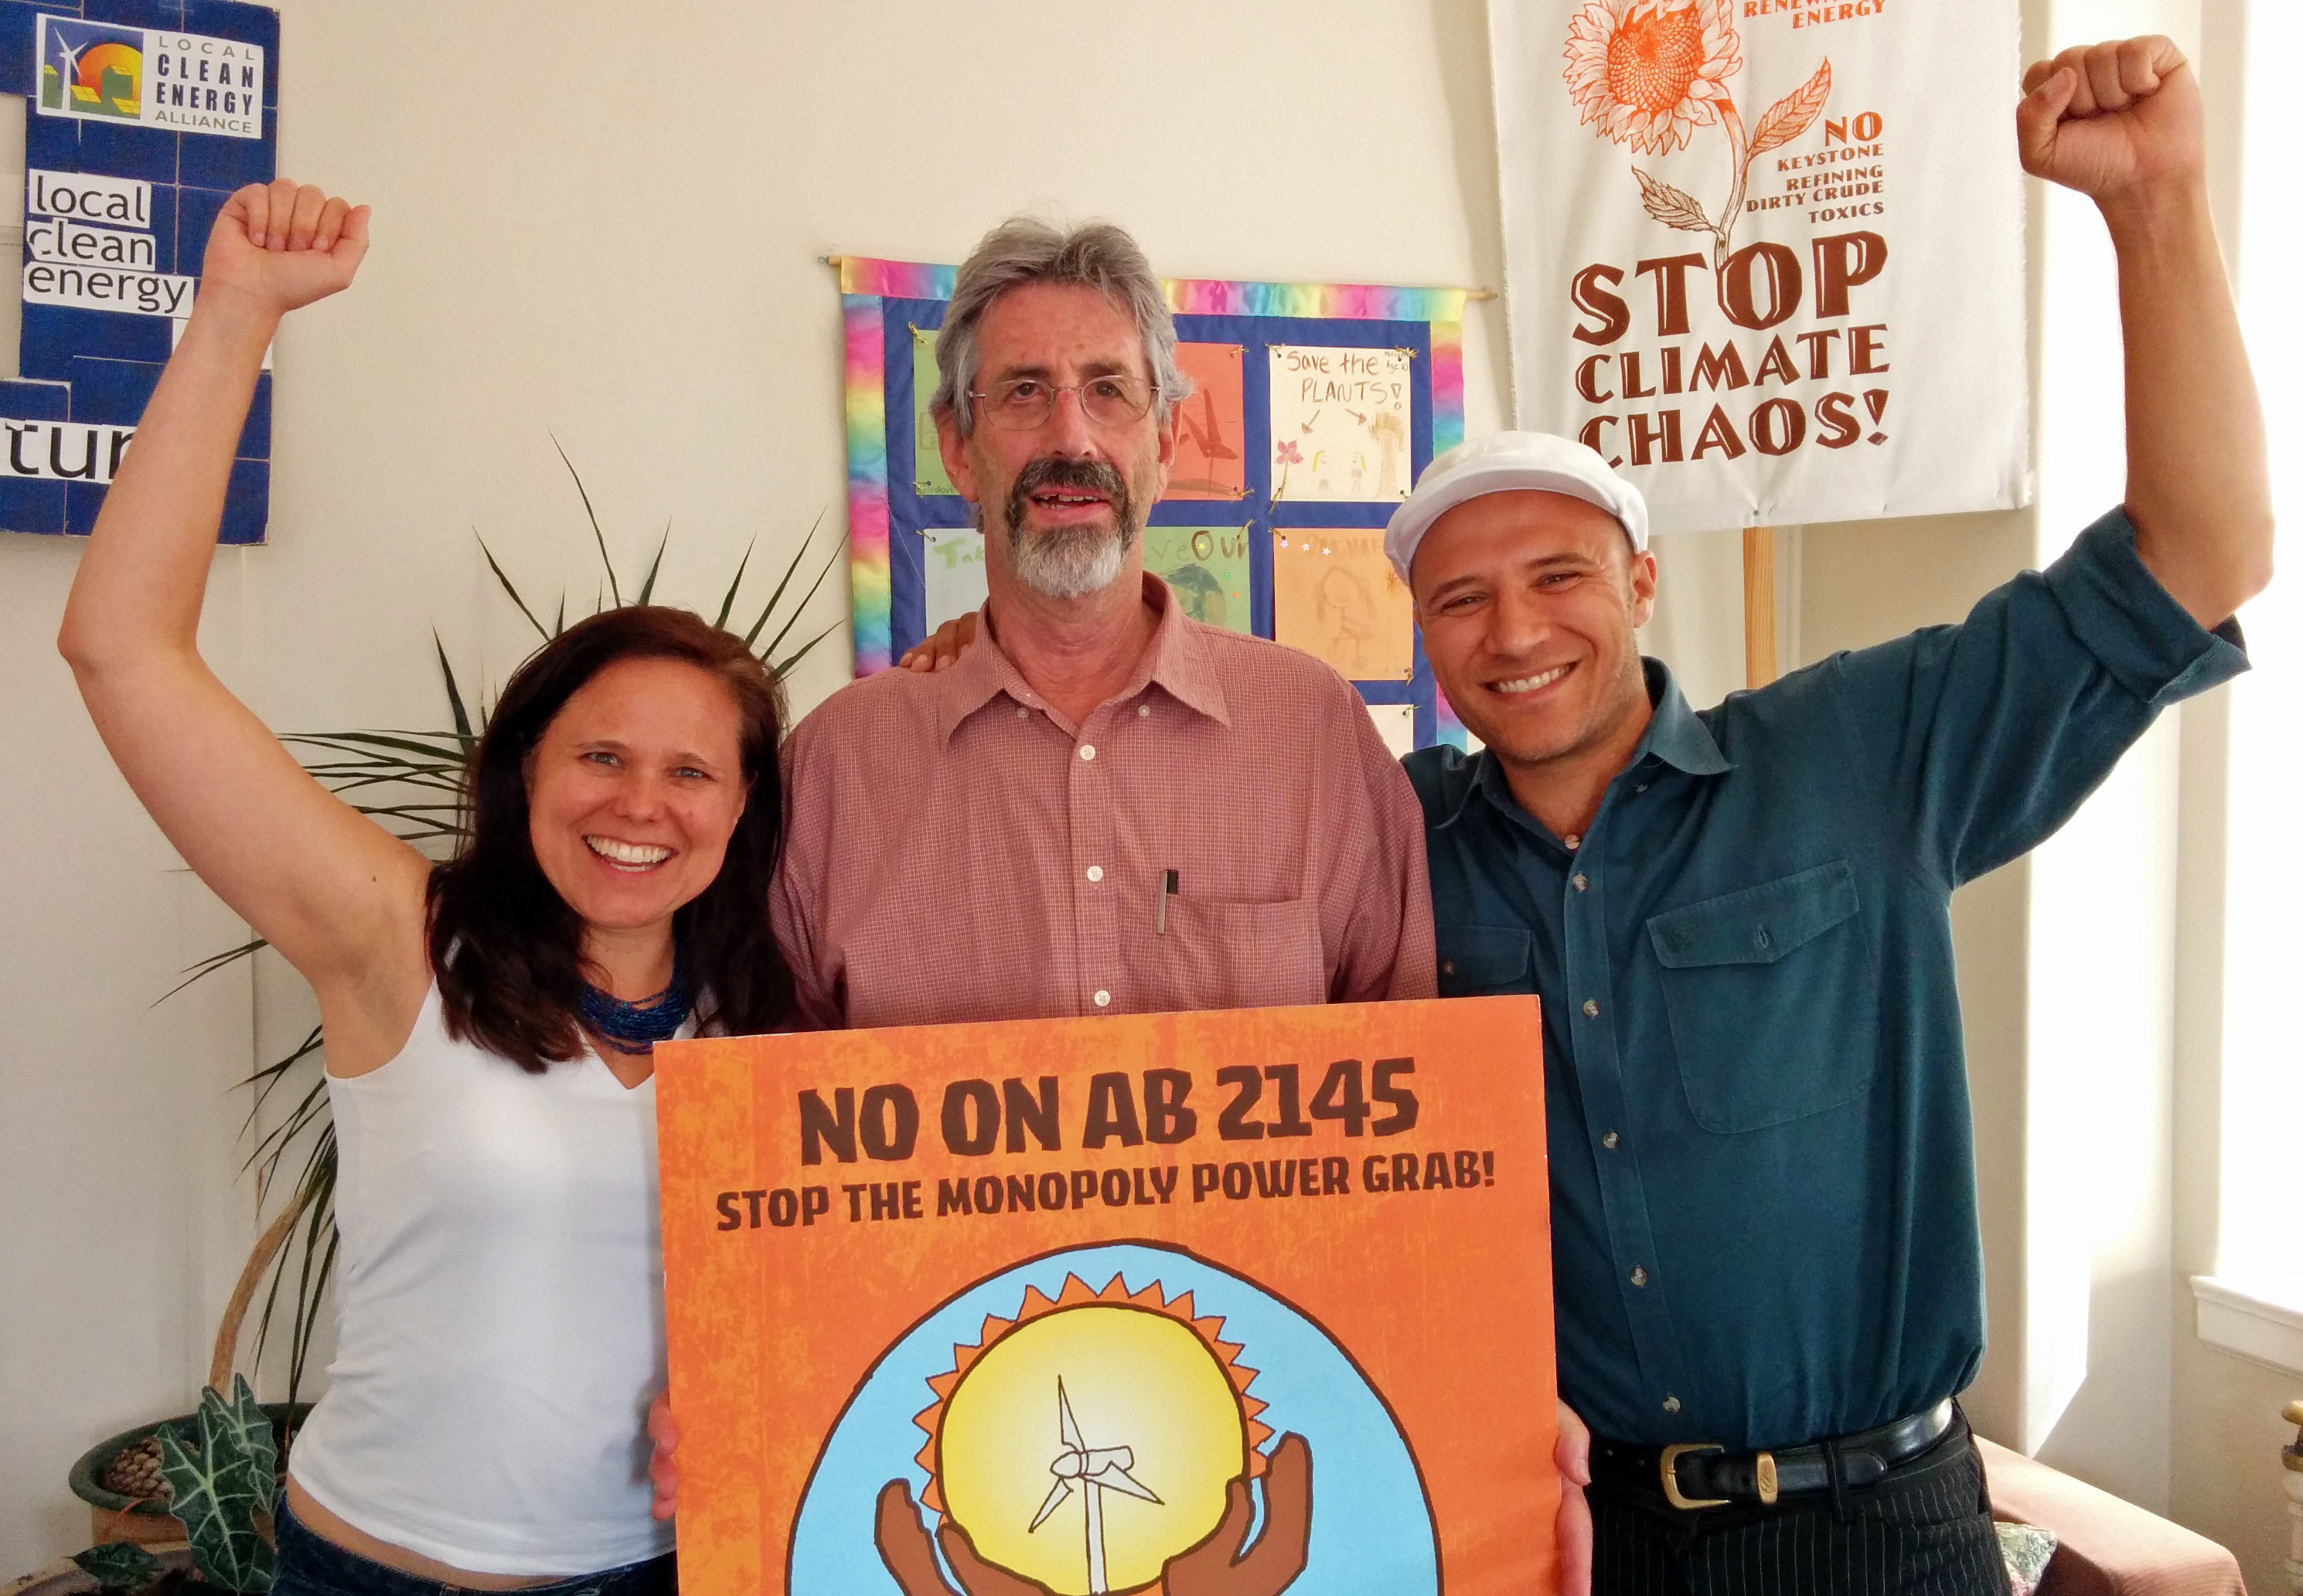 Kirsten Schwind, Local Clean Energy Alliance (LCEA) Steering Committee member, Al Weinrub, LCEA Coordinator, and Colin Miller, Clean Energy & Jobs Oakland Coordinator celebrate the AB 2145 victory.